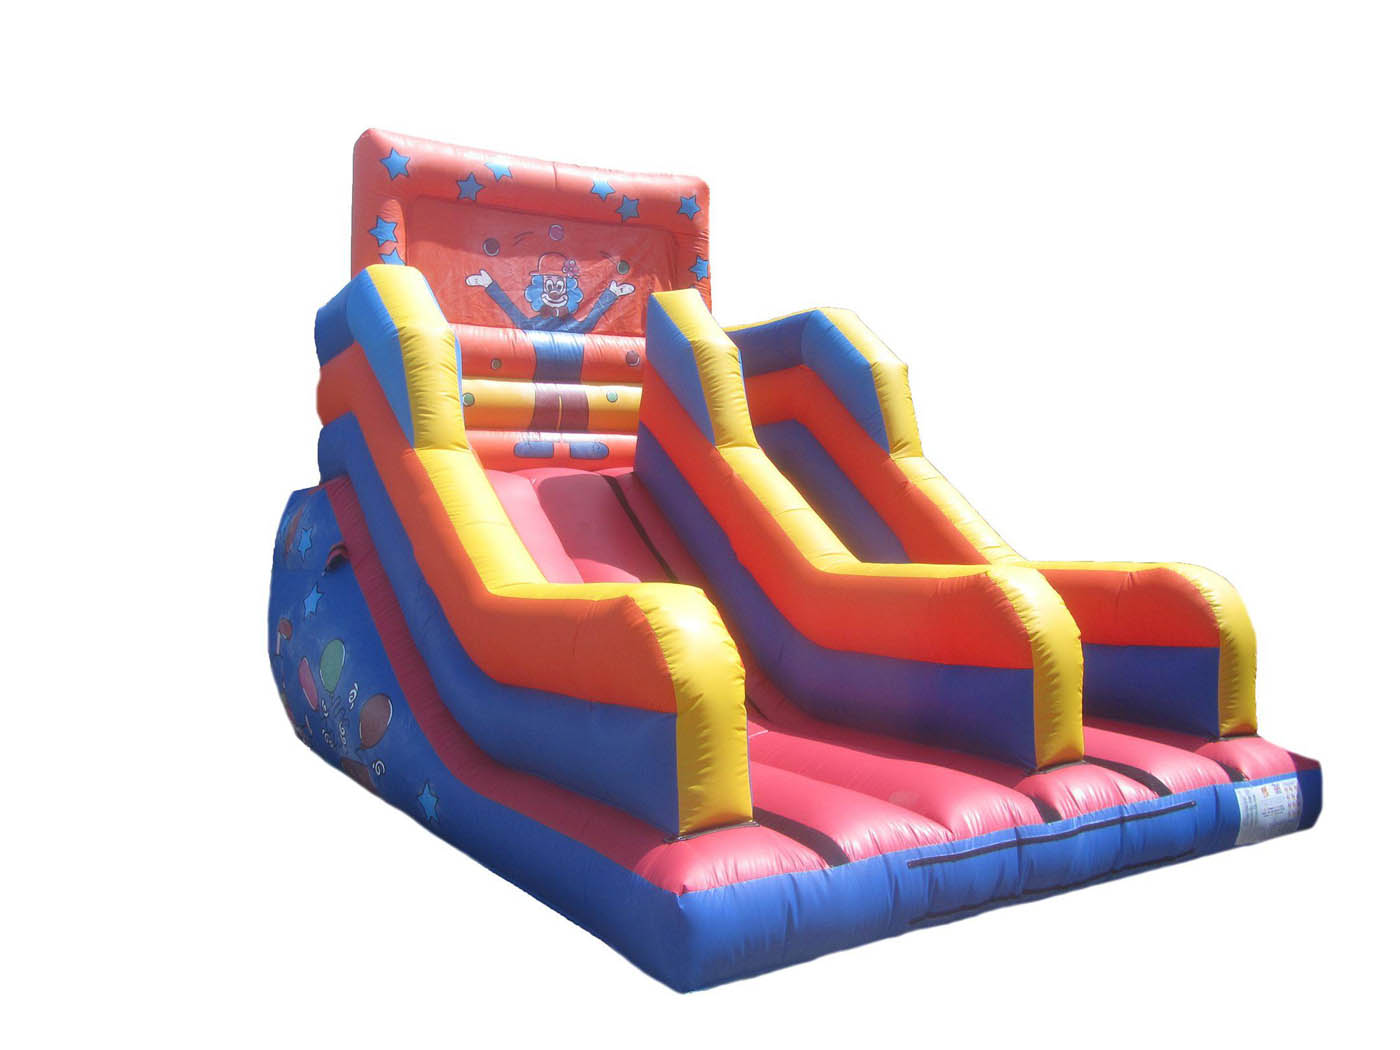 15ft-clown-platform-inflatable-slide-compressor